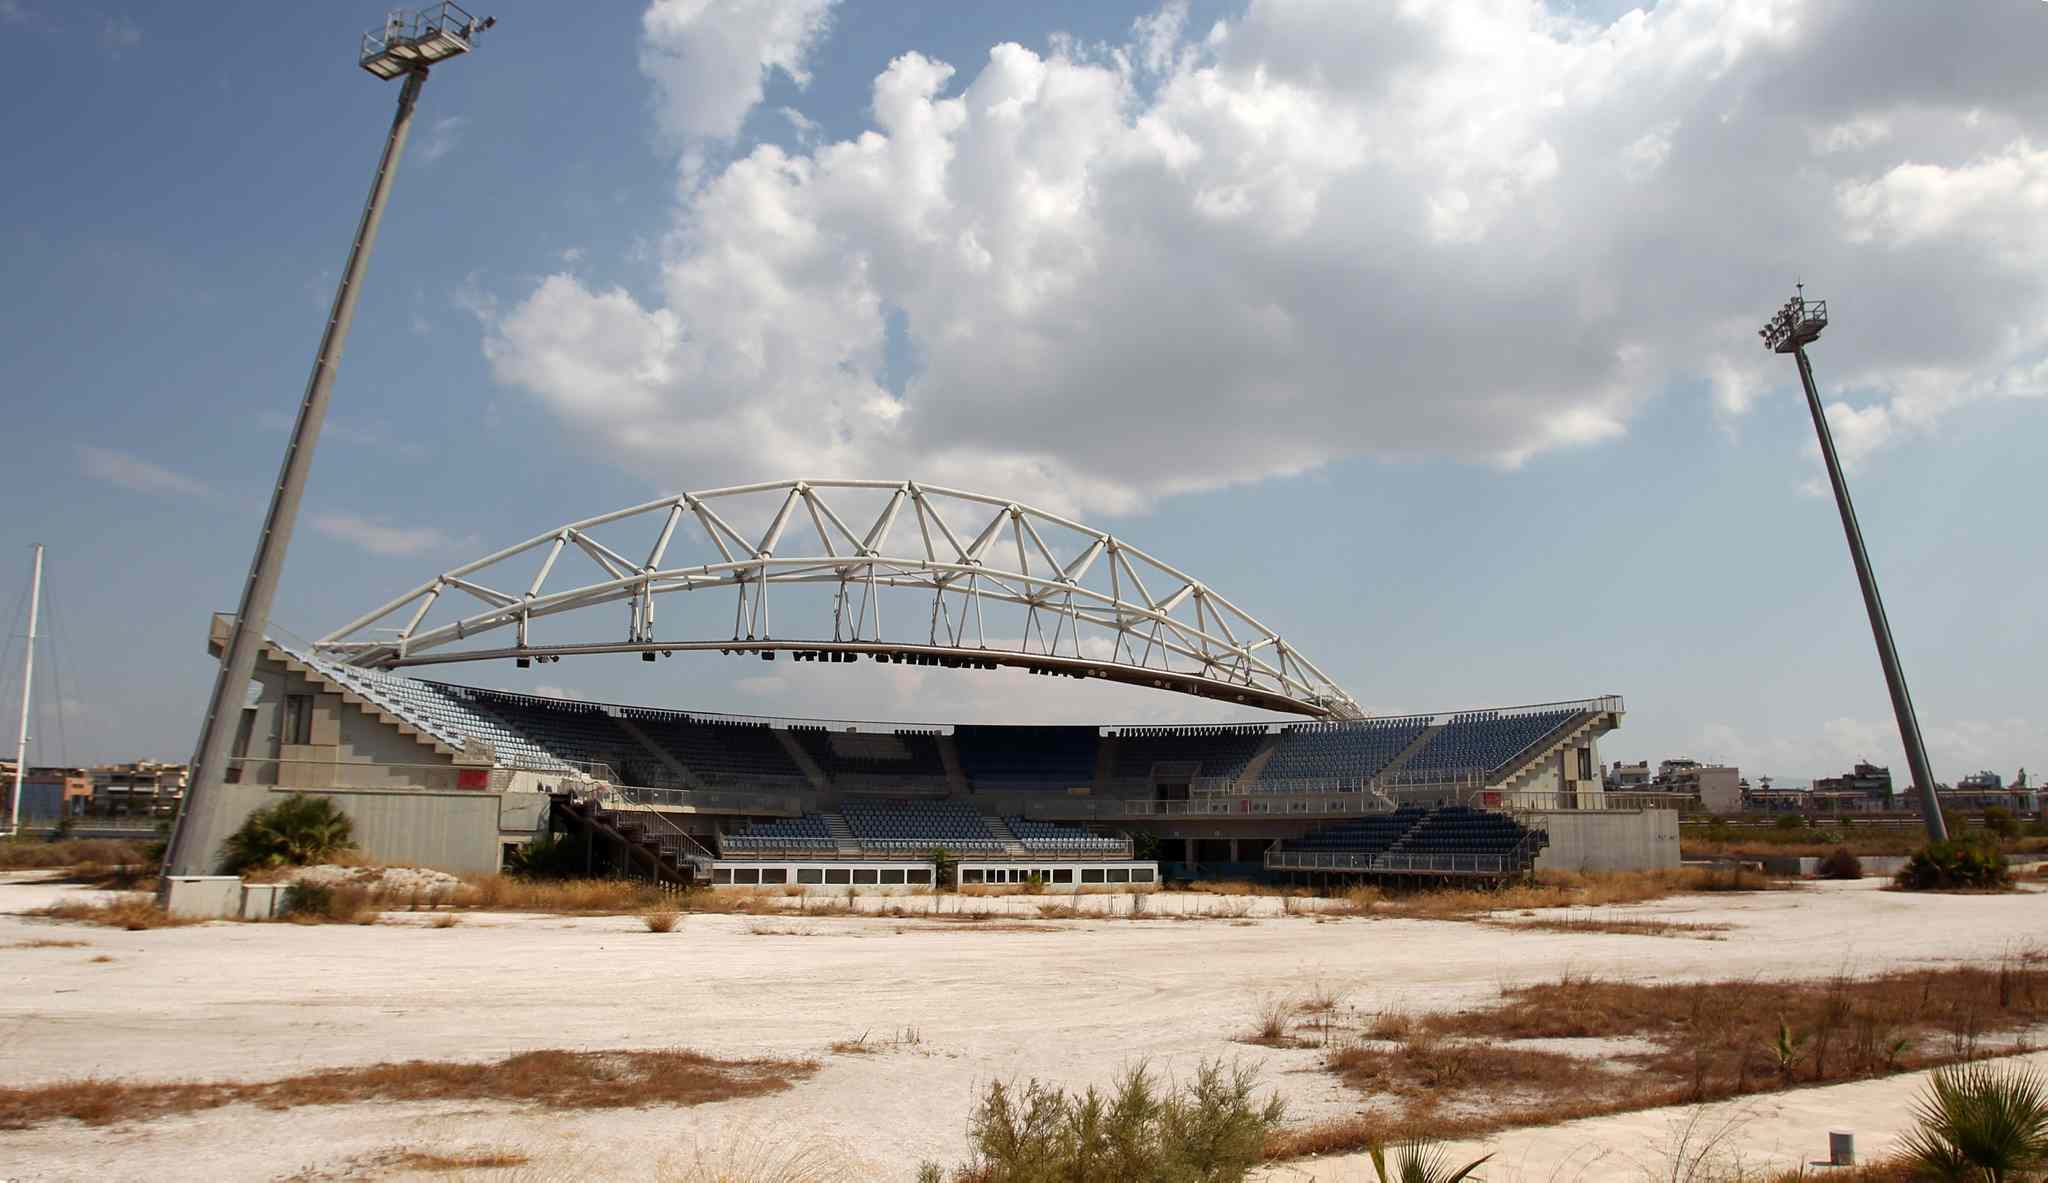 The Olympic beach volleyball lies abandoned in southern Athens. The legacy of Athens Olympics has stirred vigorous debate, and Greek authorities have been widely criticized for not having a post-Games plan for the infrastructure.